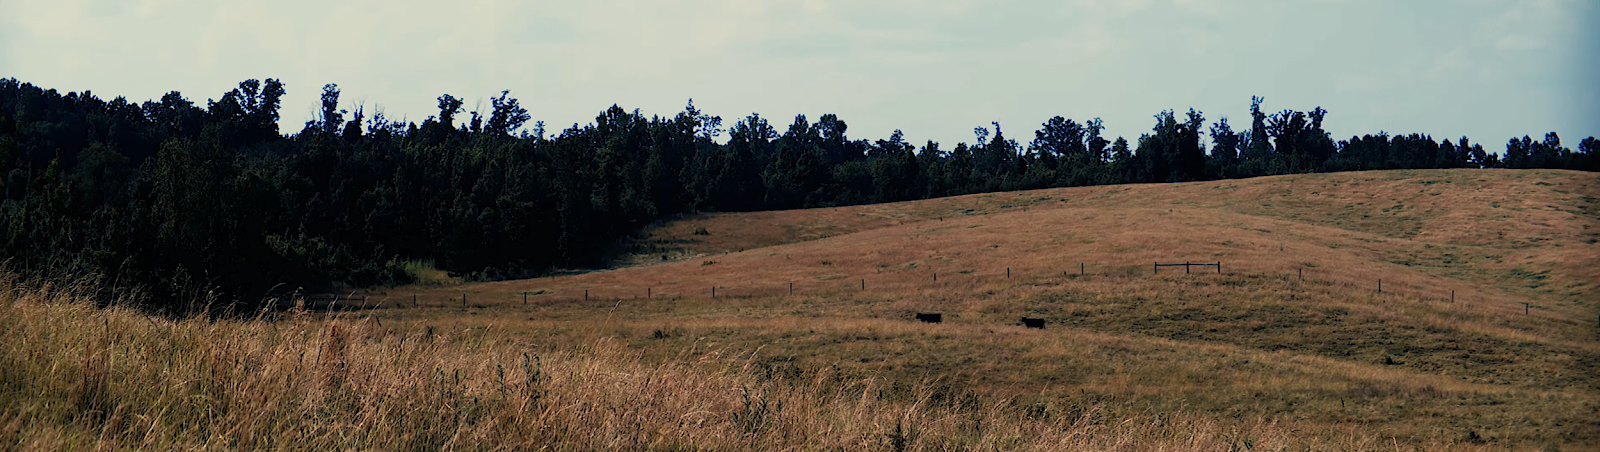 Wide frame image of golden grassy hill